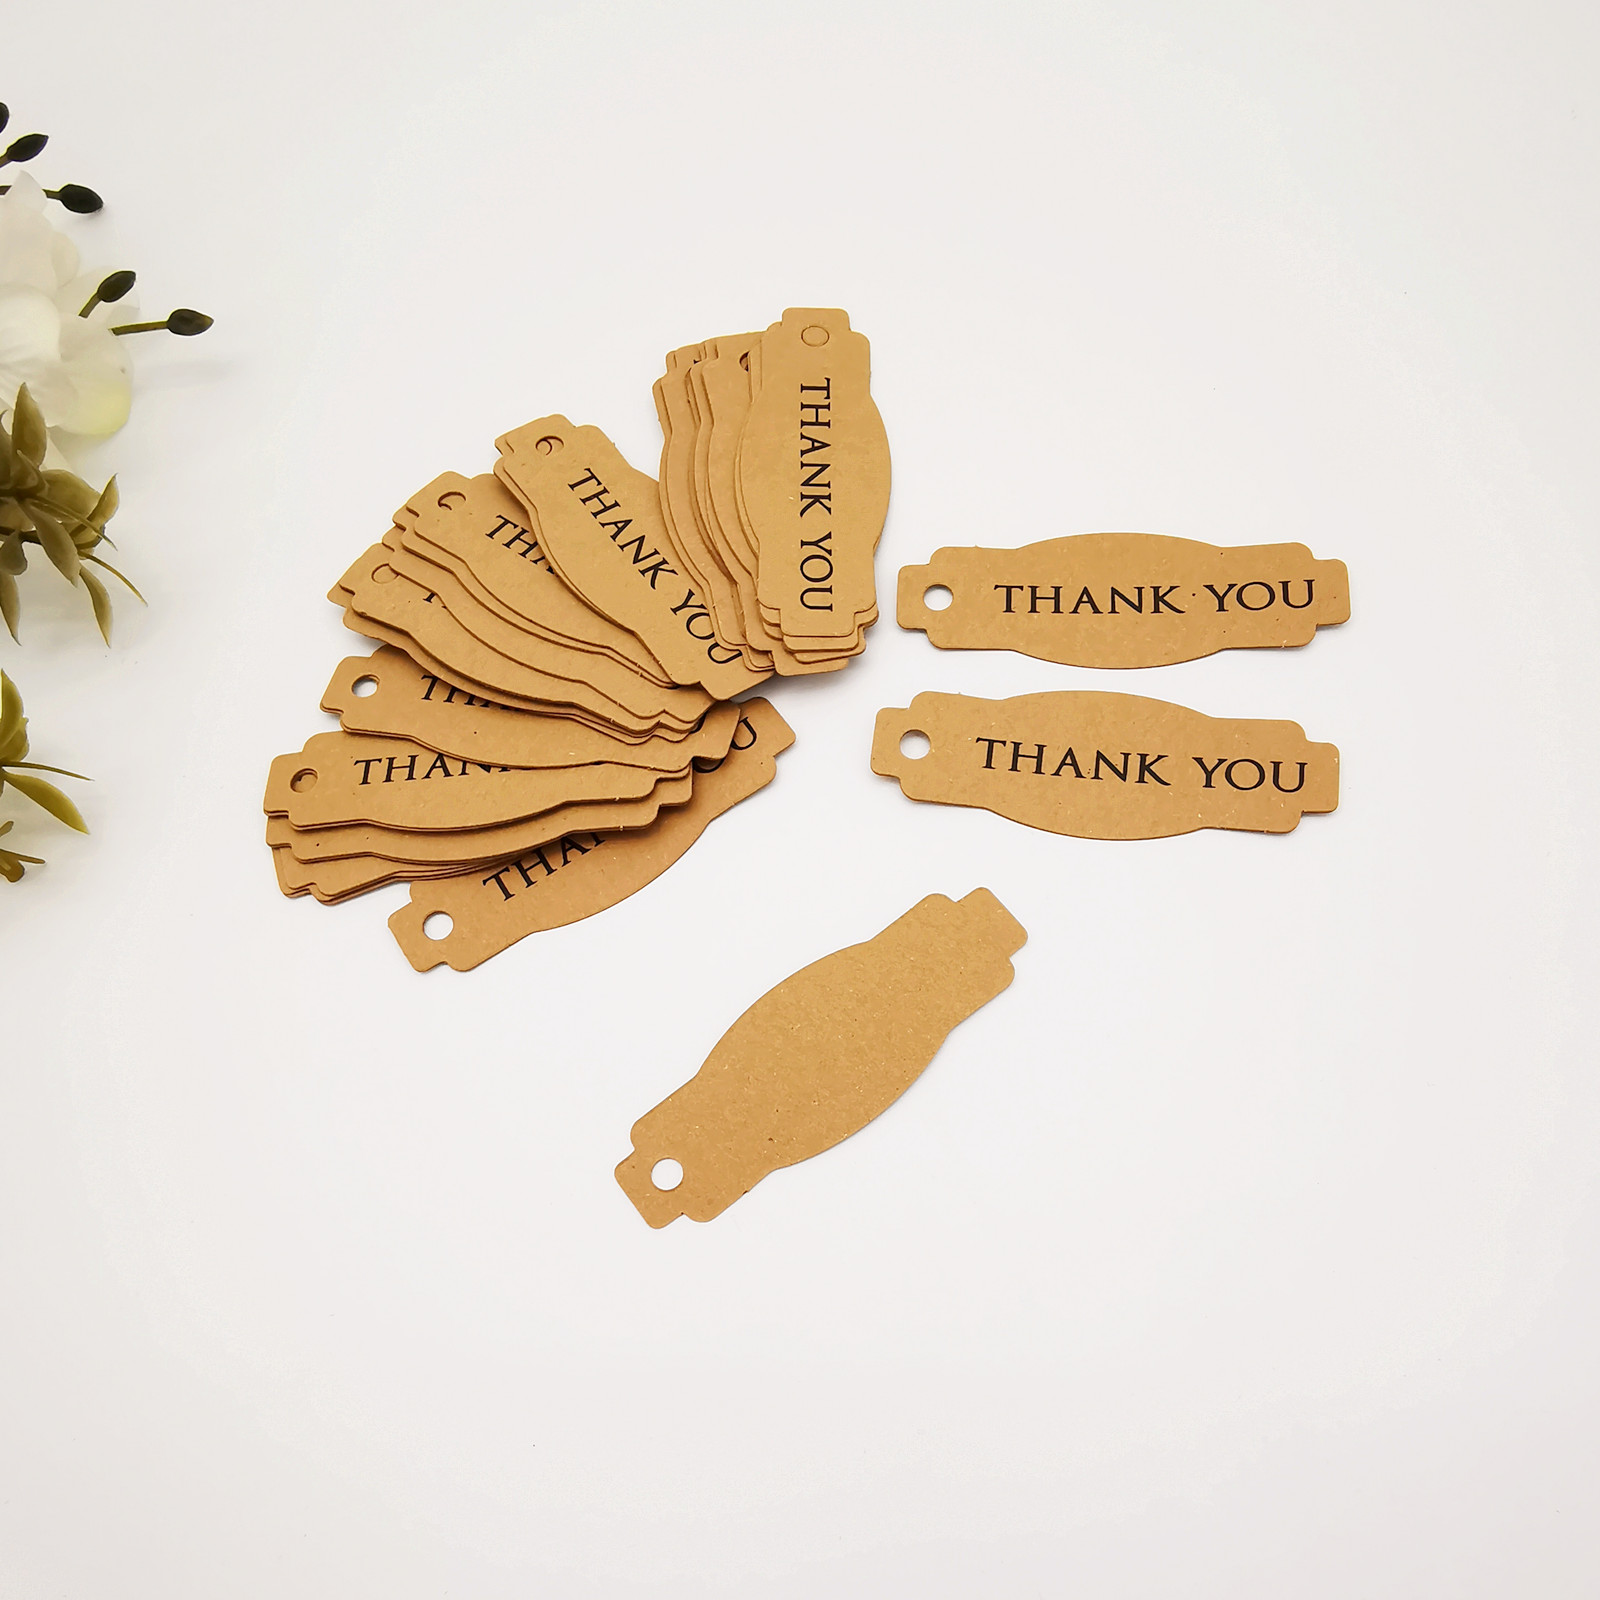 Kraft Paper Little Gift Box Ornaments Thank You Note Candy Box Decorations Small Decorative Items